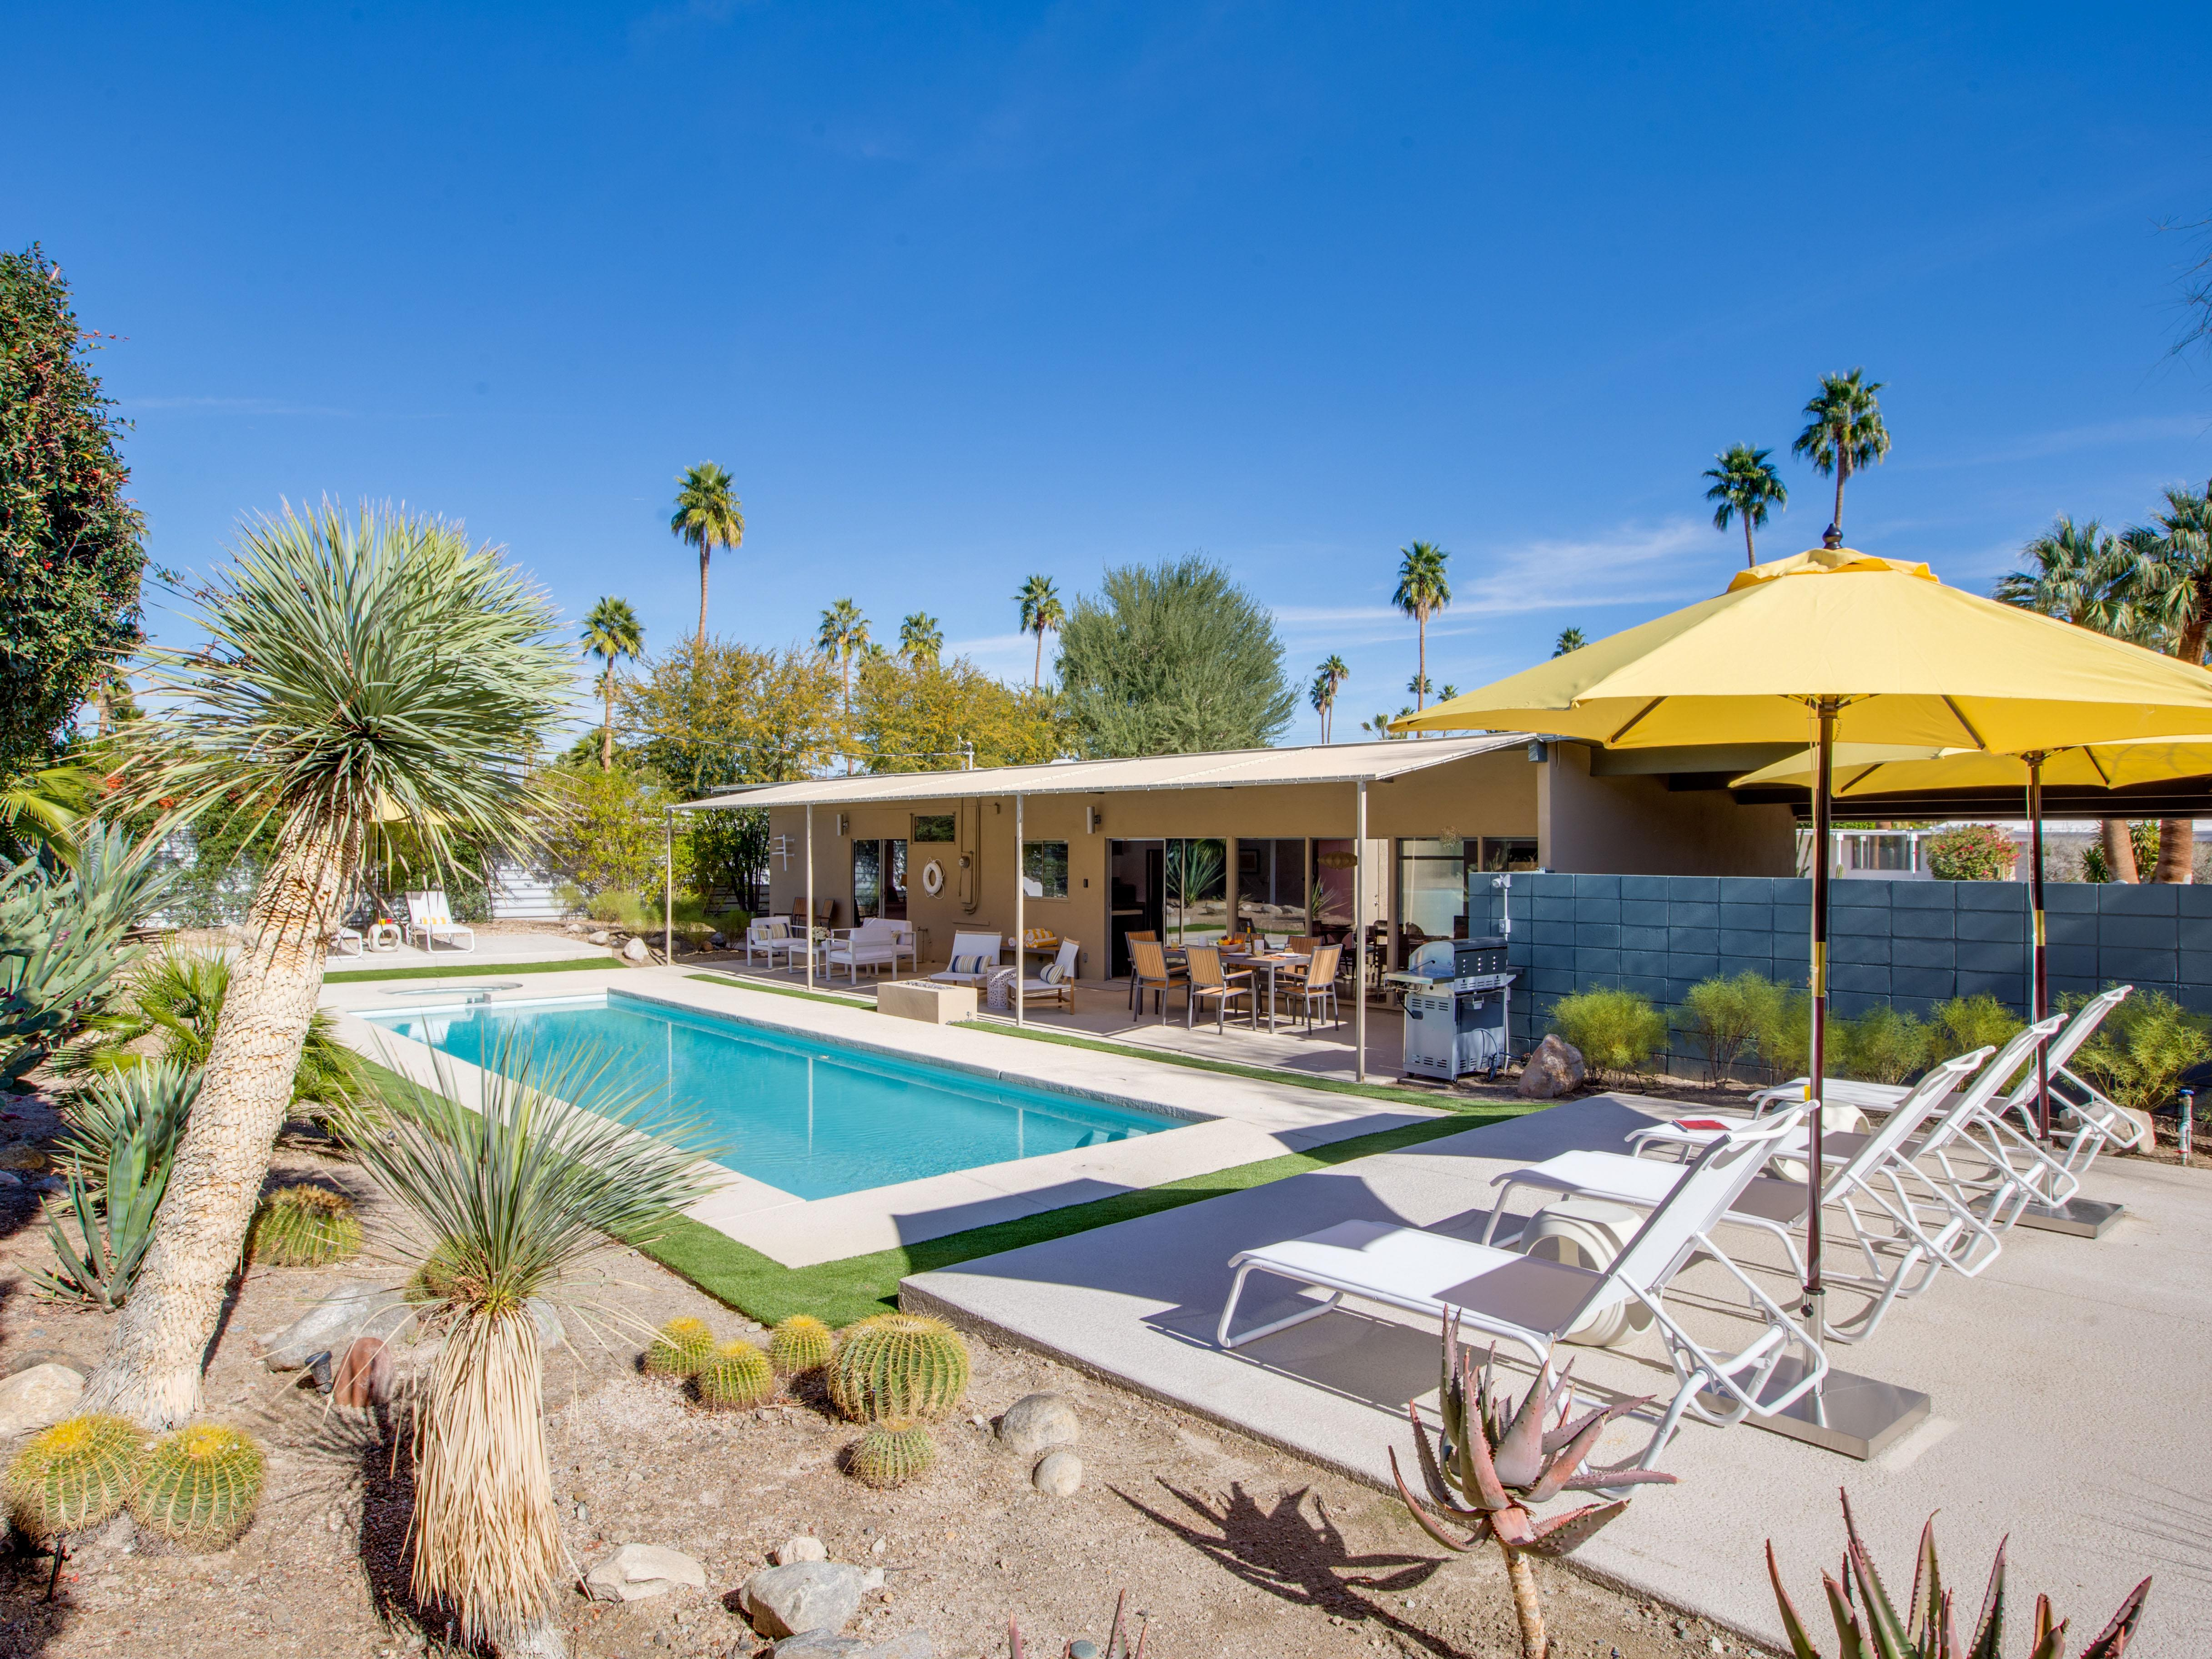 Property Image 1 - The Bowie House: Retro Retreat with Lush Poolside Oasis